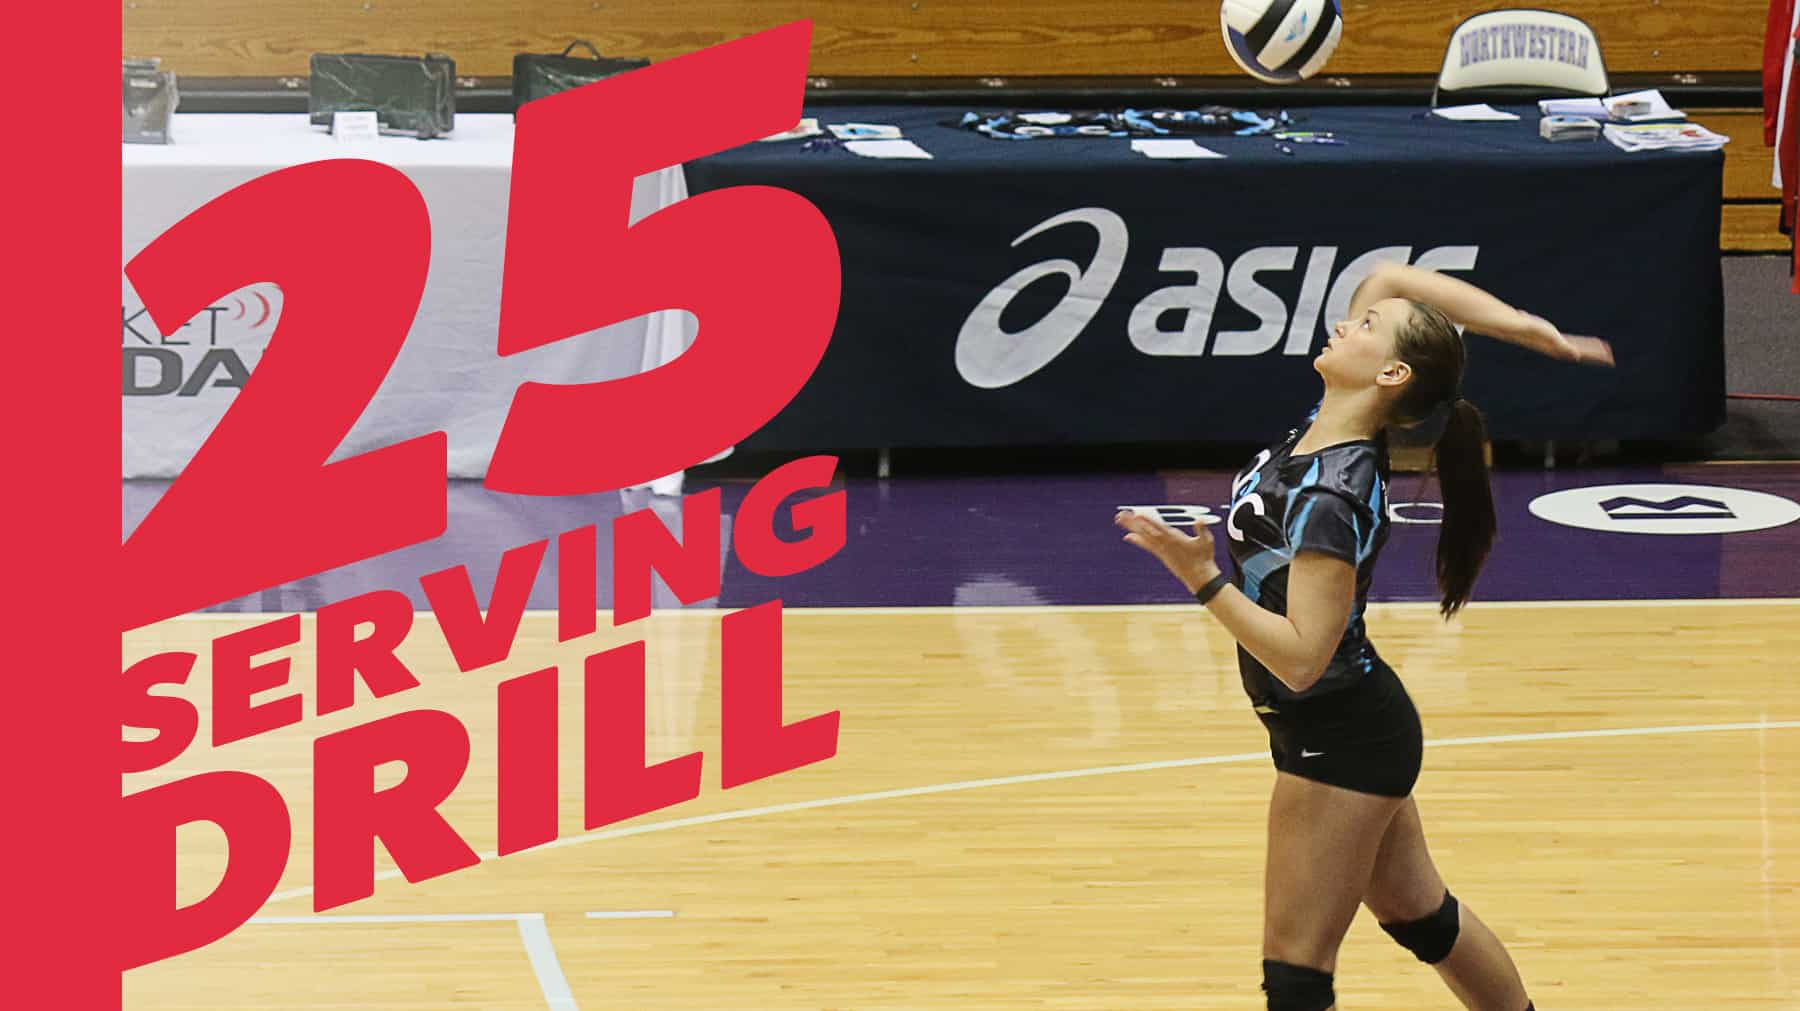 25 Serving Drill For Precision Practice